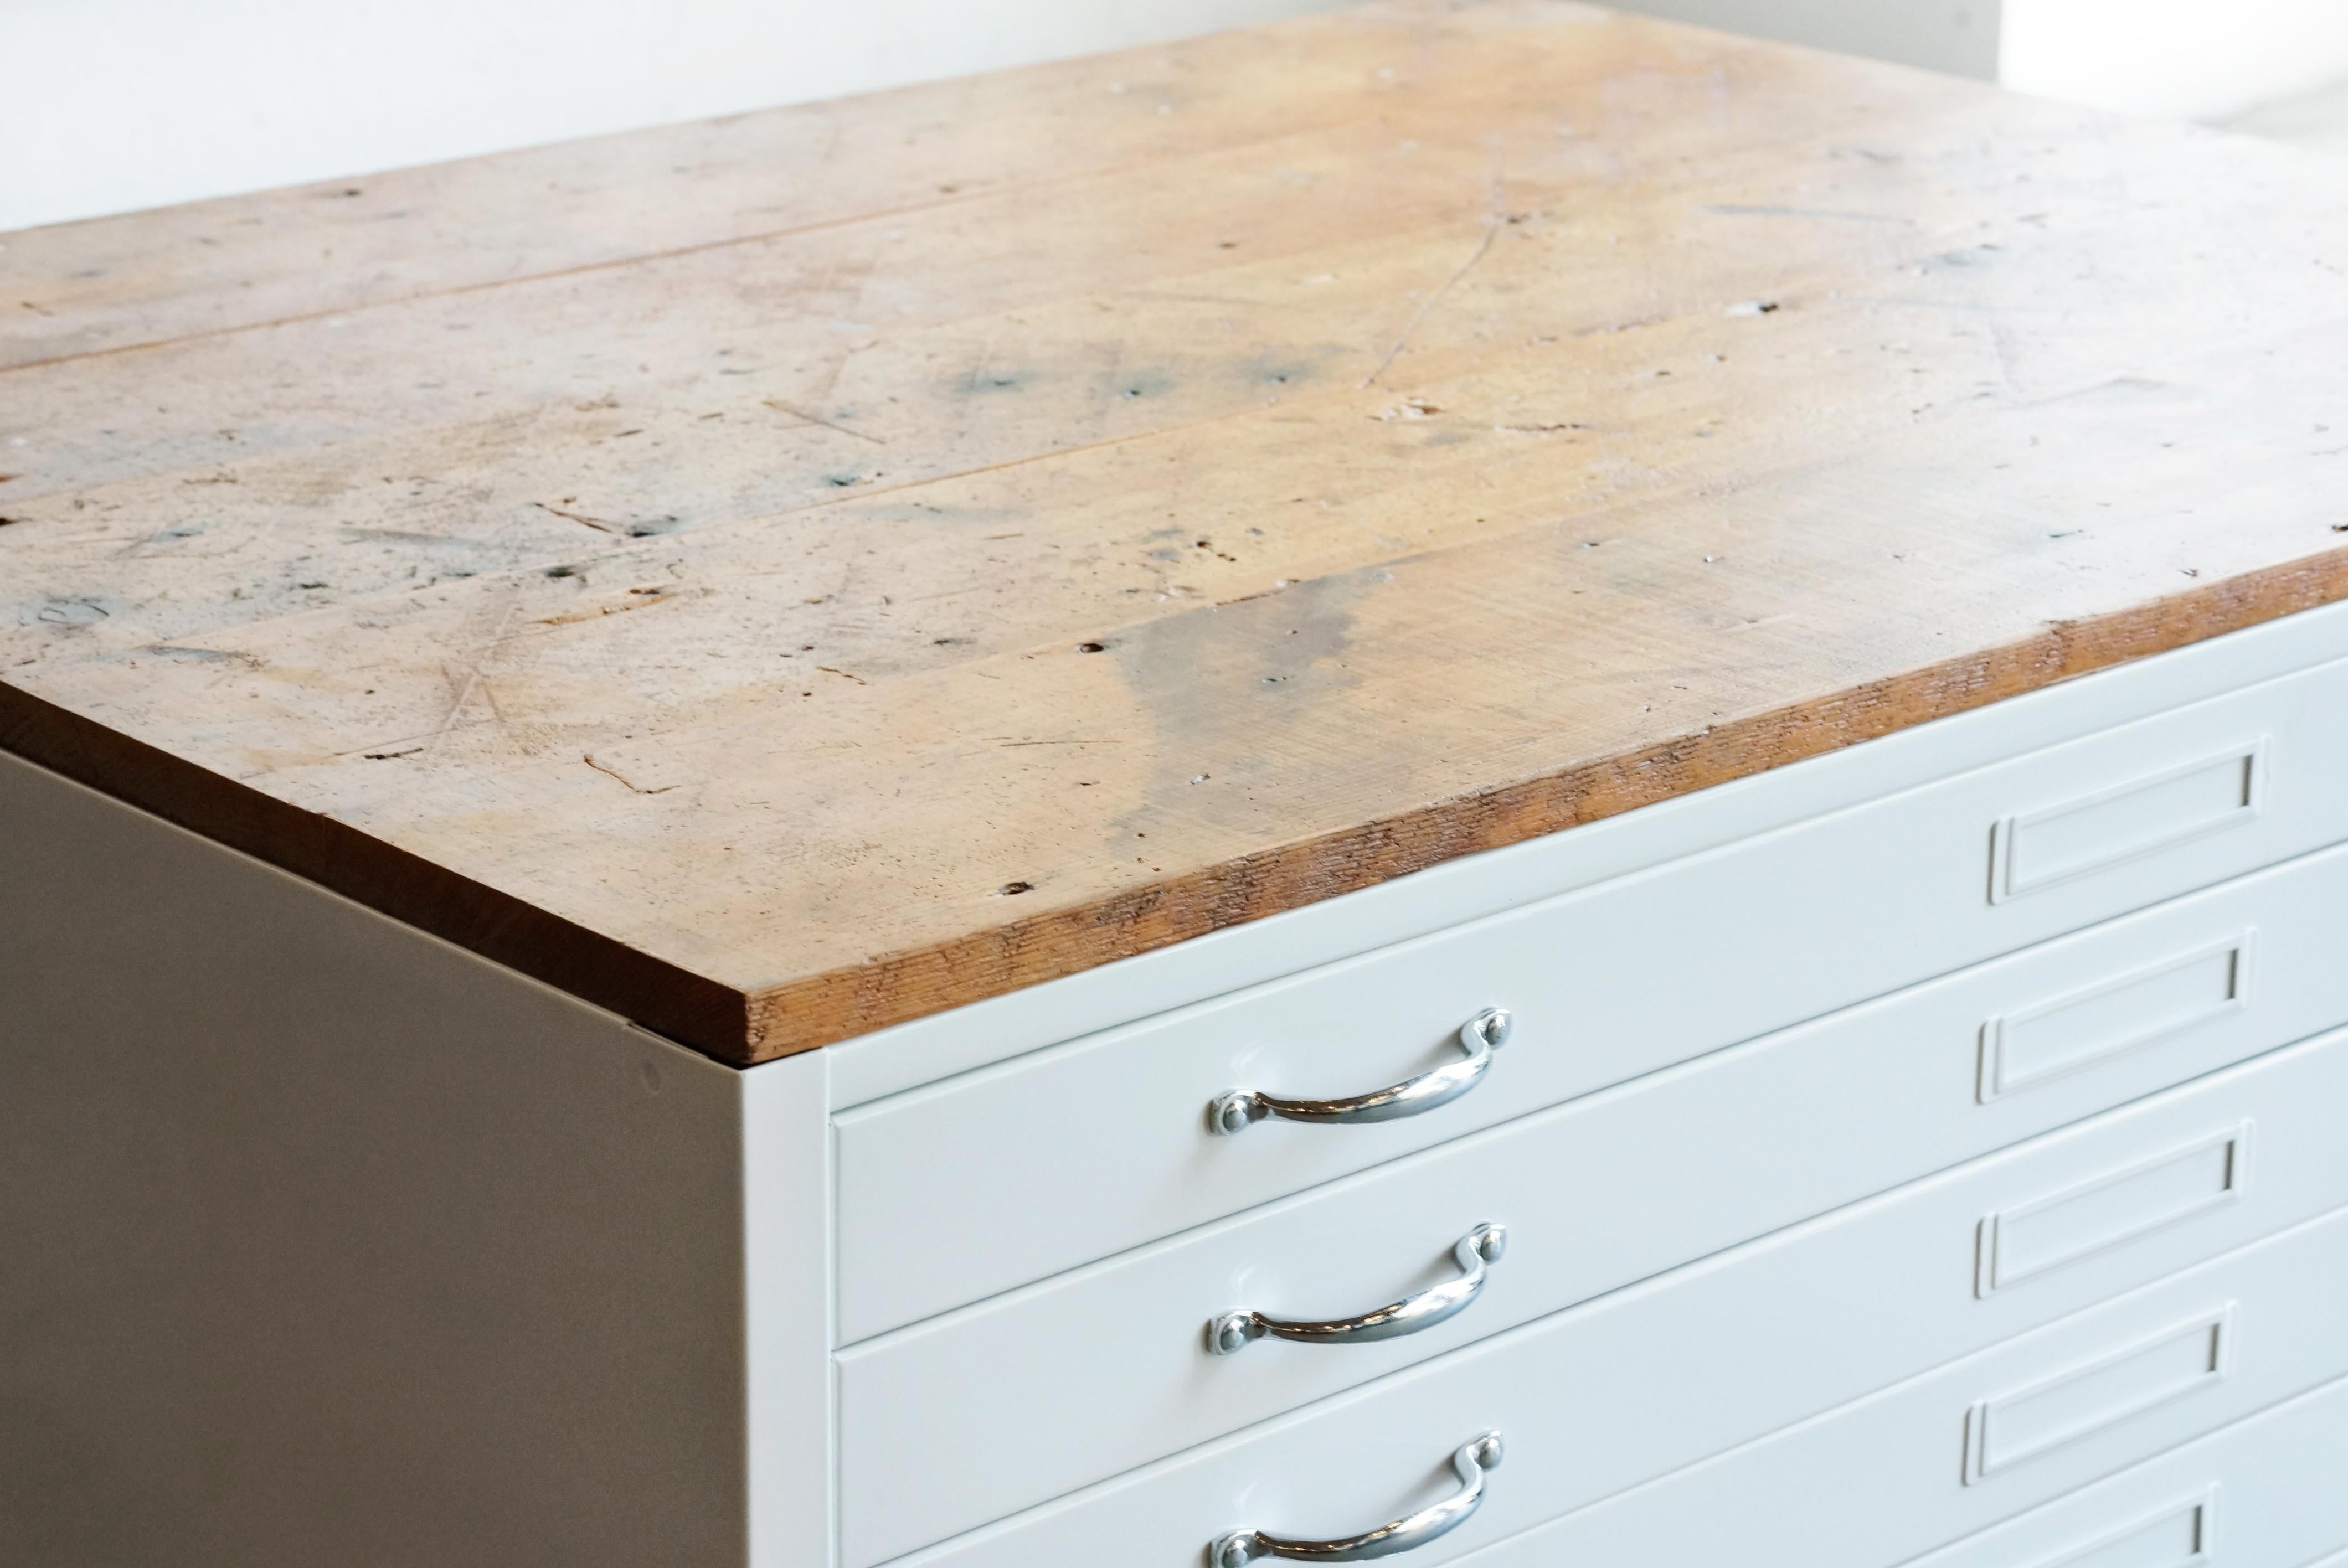 Flat File Coffee Table In High Gloss White With Reclaimed Wood For Sale    Image 4